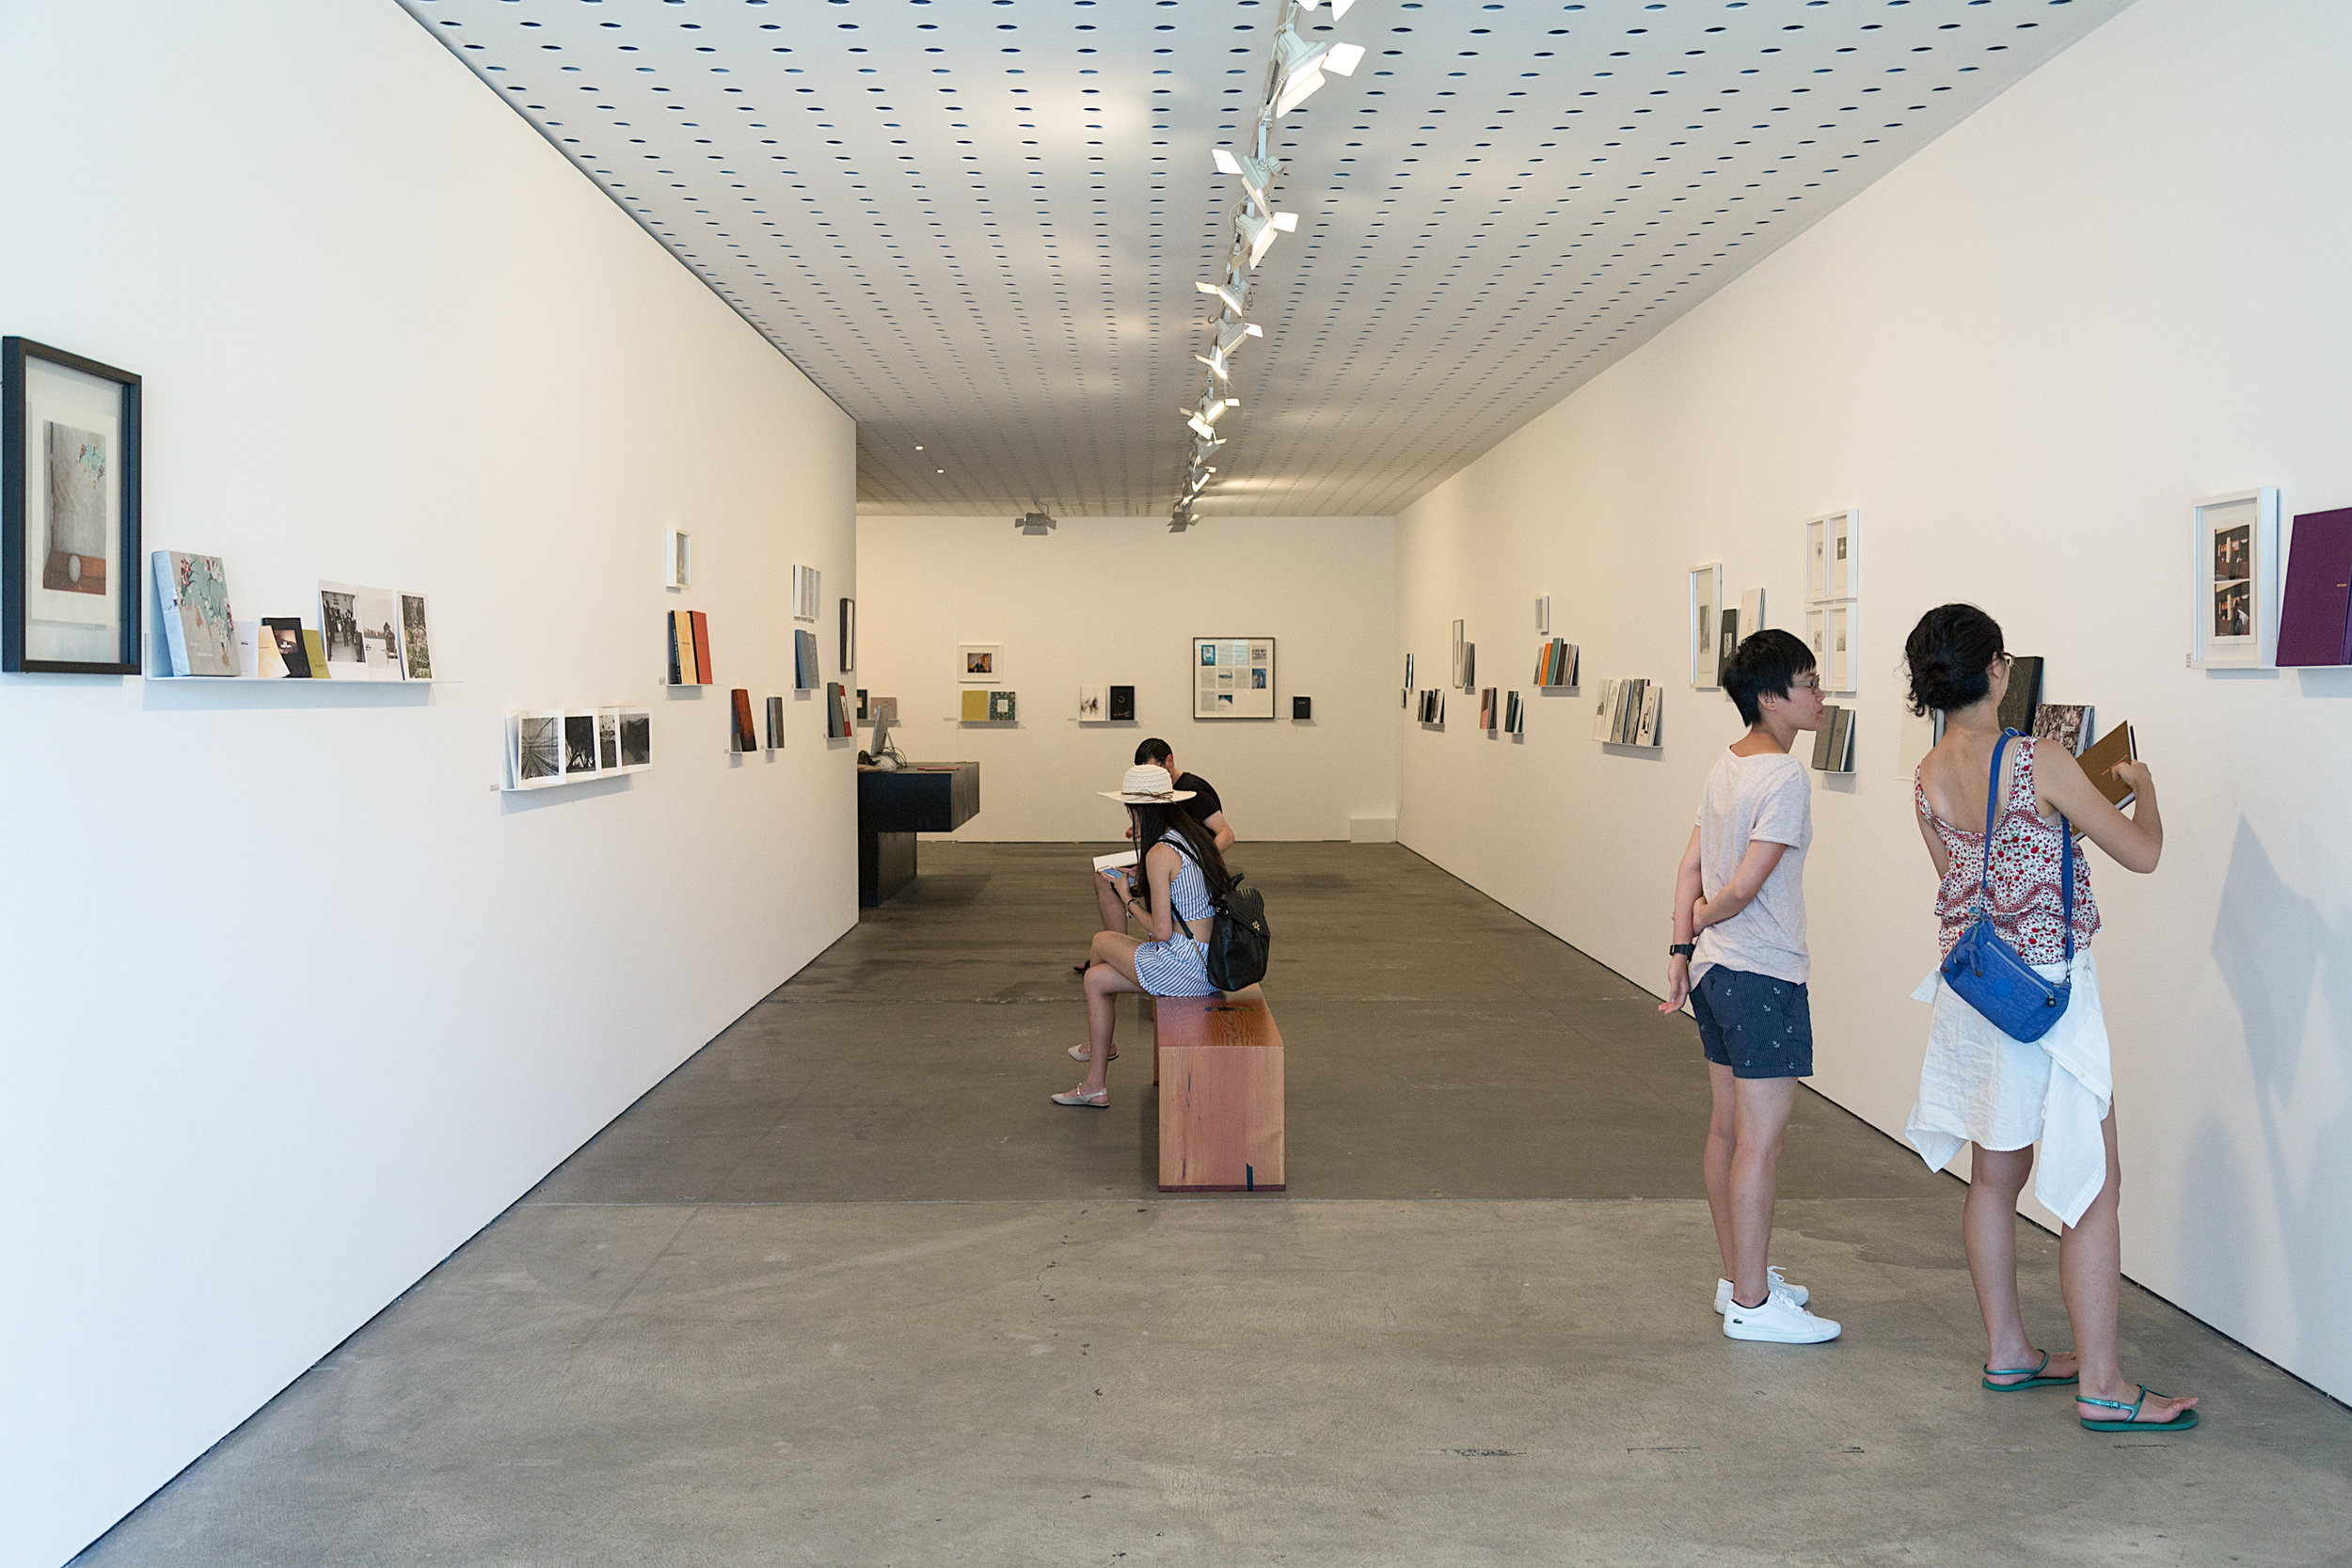 Installation view of  The Art of Publishing: An Exhibition of MACK Books  at Centre for Contemporary Photography, Melbourne. All images: J Forsyth.